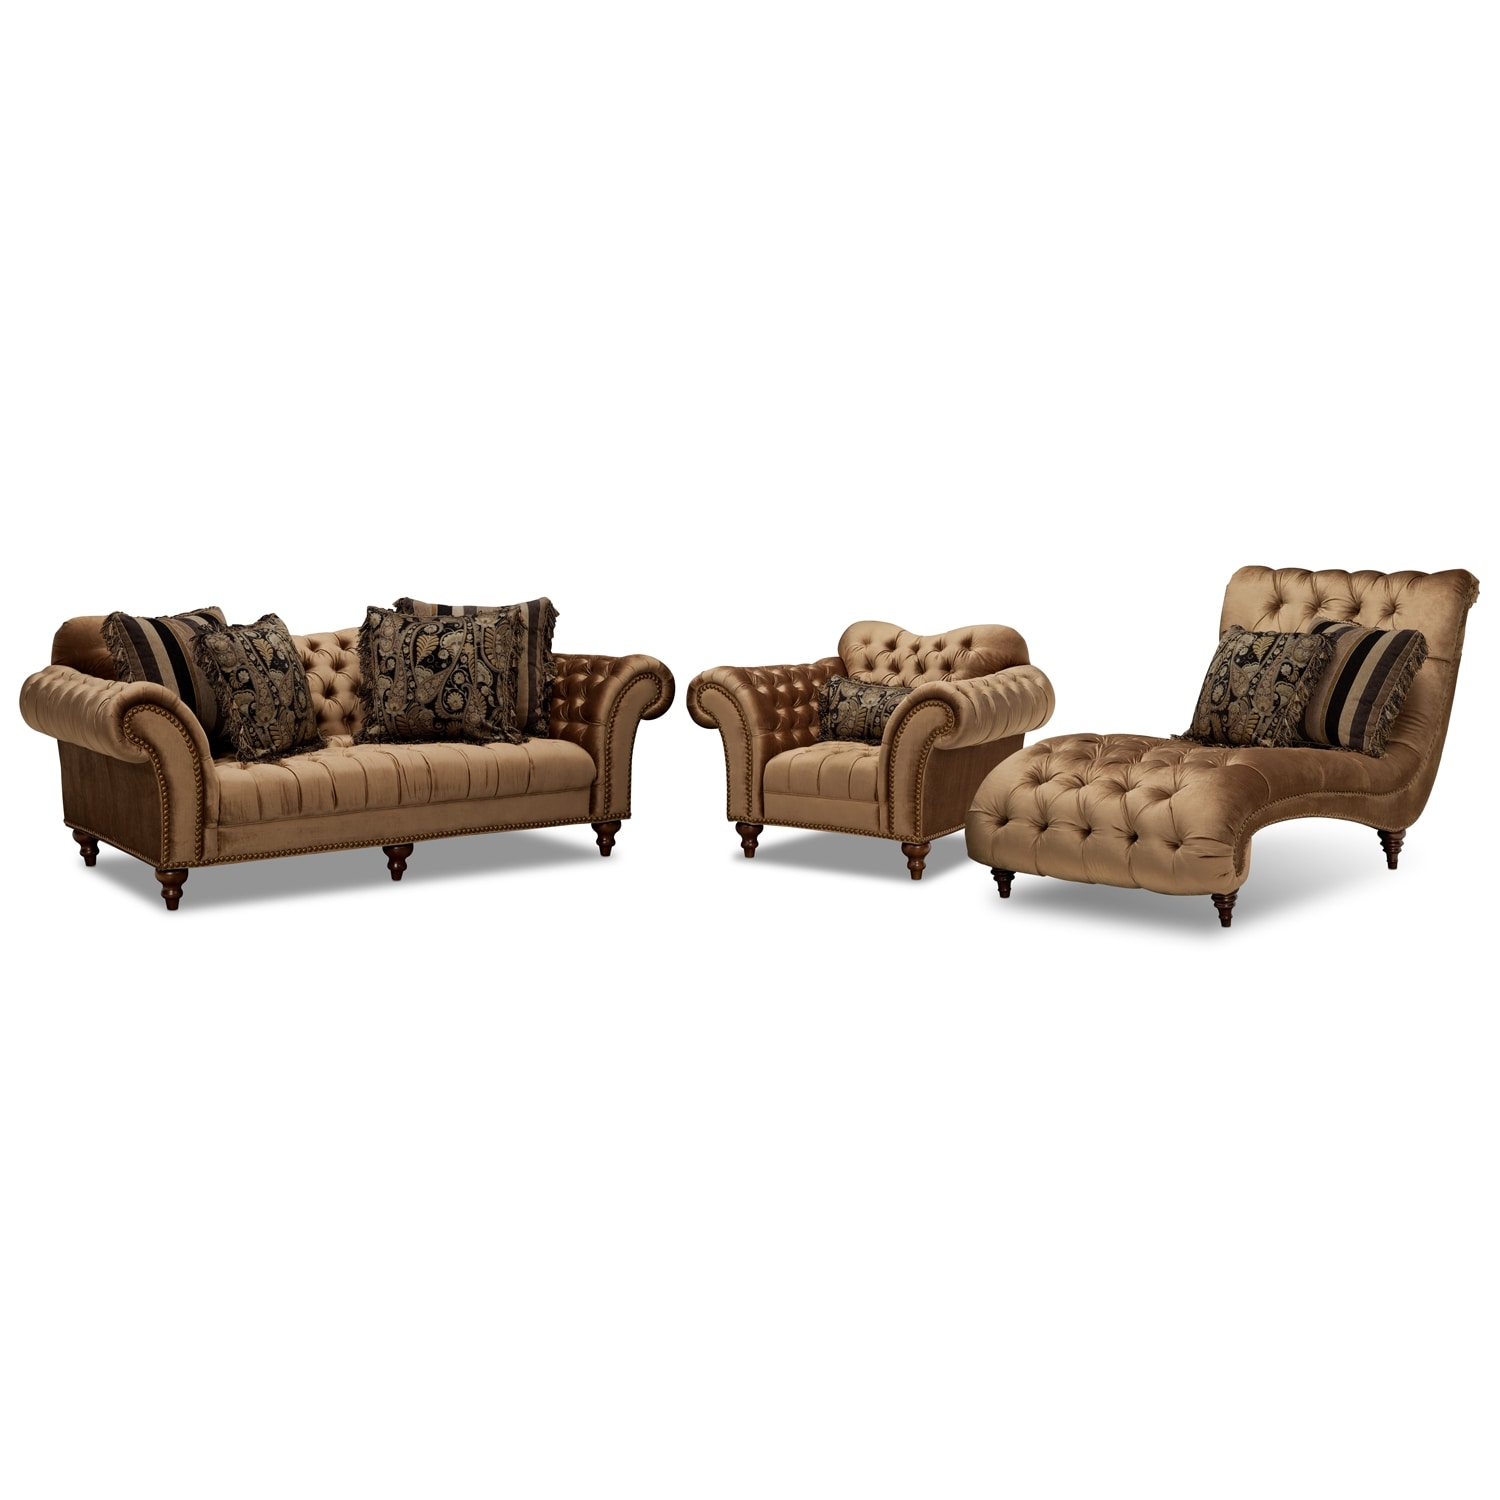 Awesome $3,299.97 Brittney Sofa, Chair And Chaise Set   Bronze